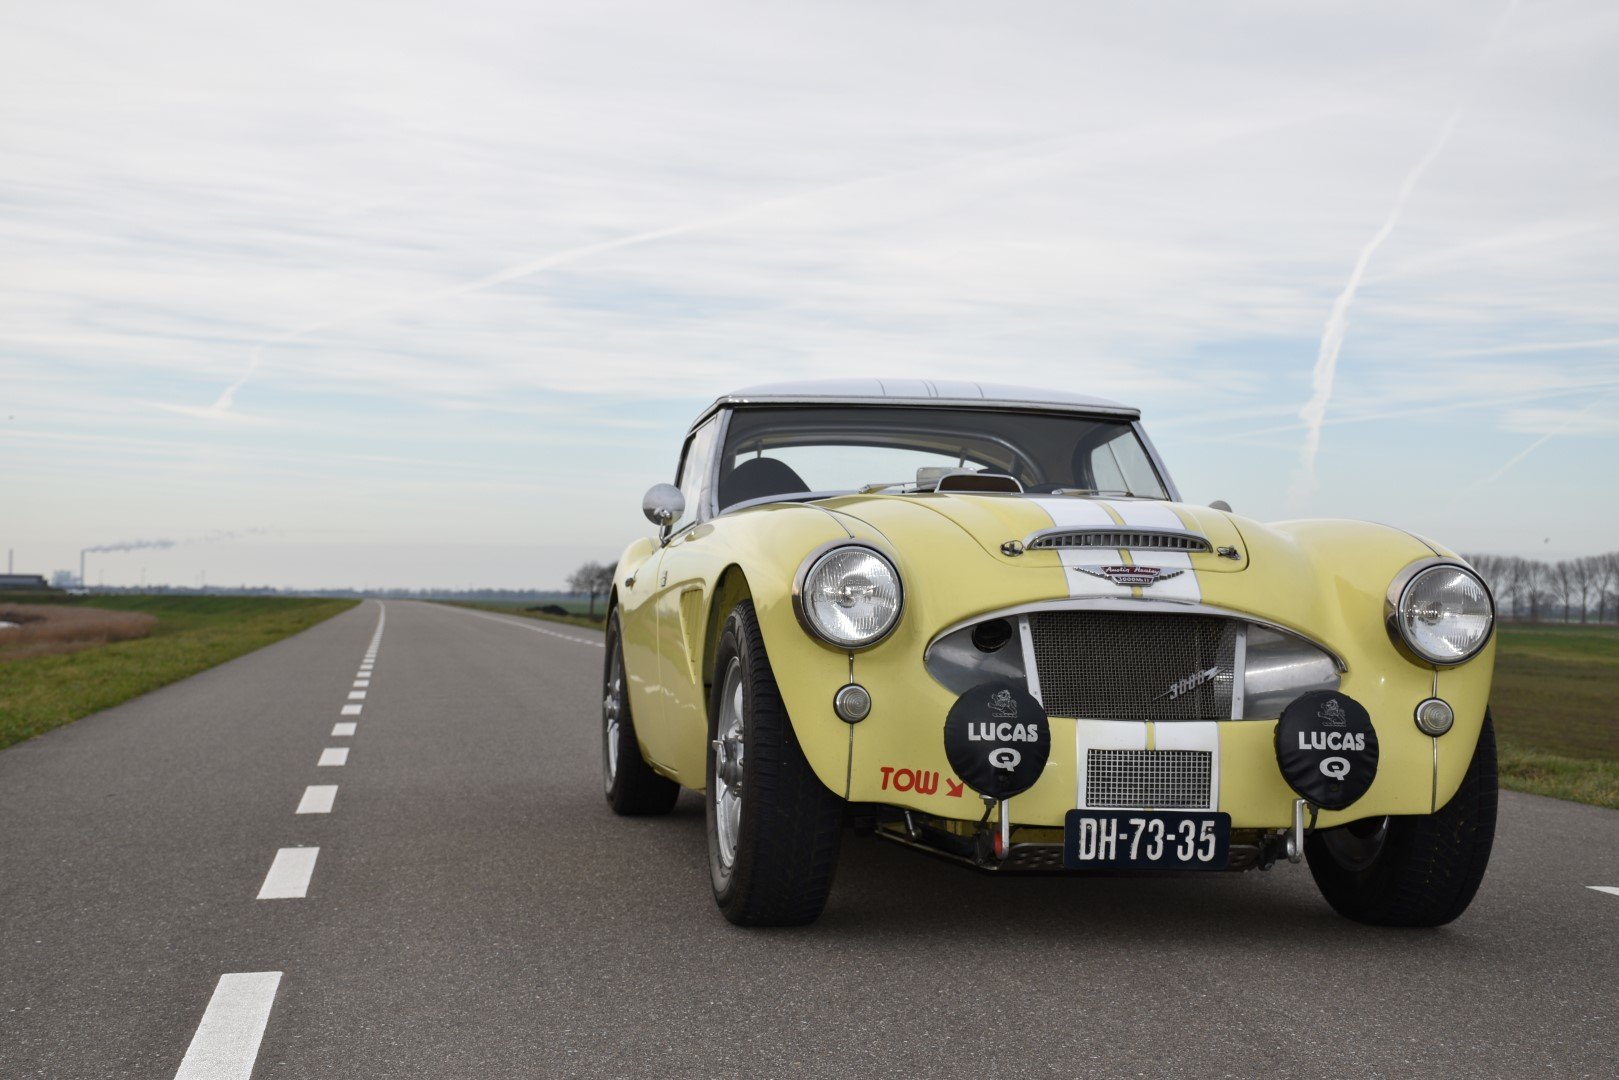 1962 Austin Healey 3000 MKII Two seater (BN7) For Sale (picture 2 of 6)